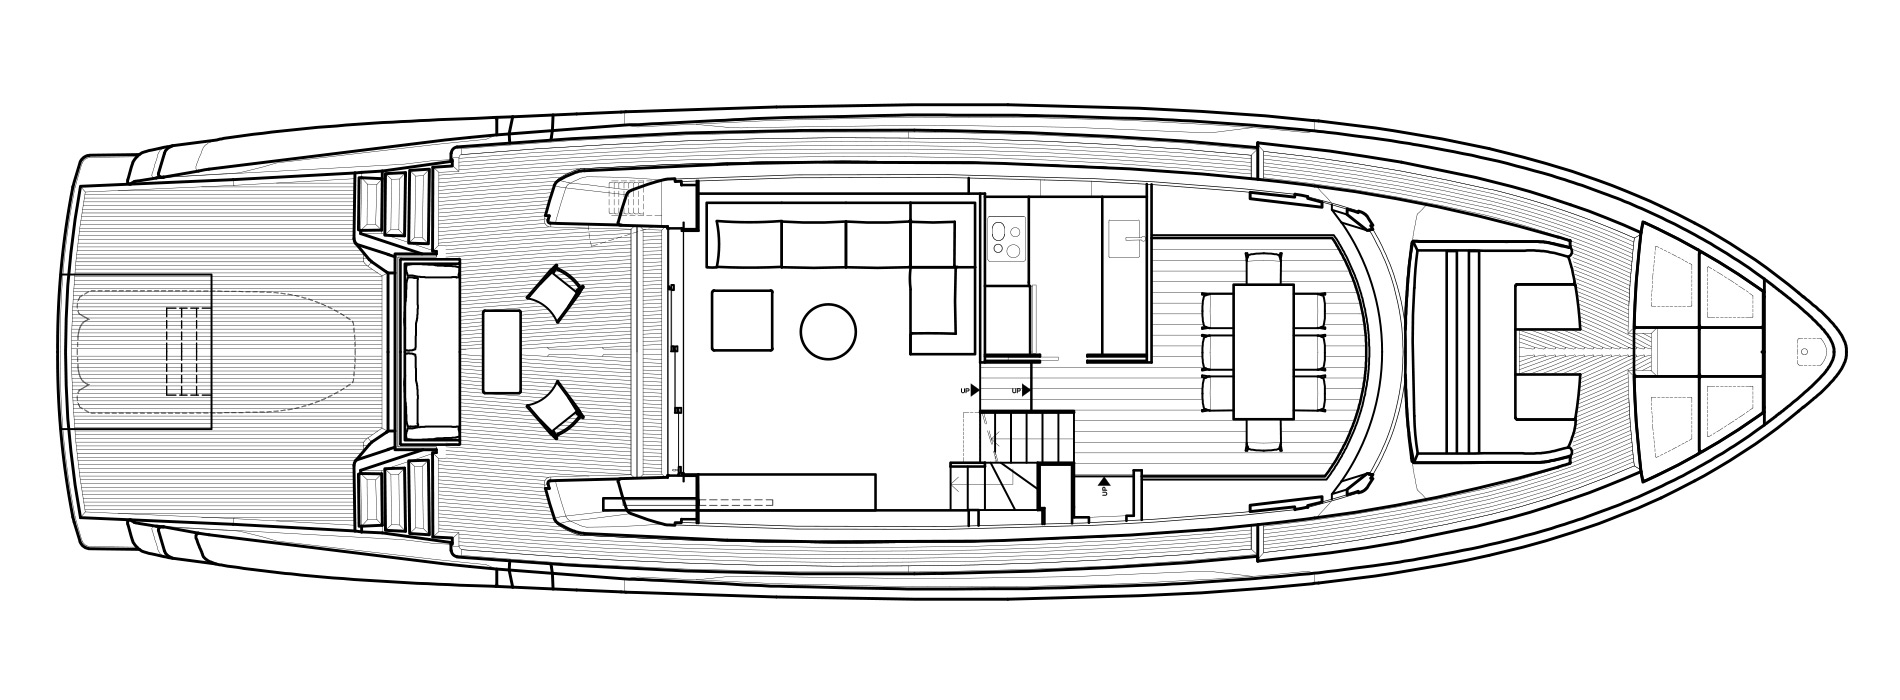 Sanlorenzo Yachts SX76 Main deck Version A